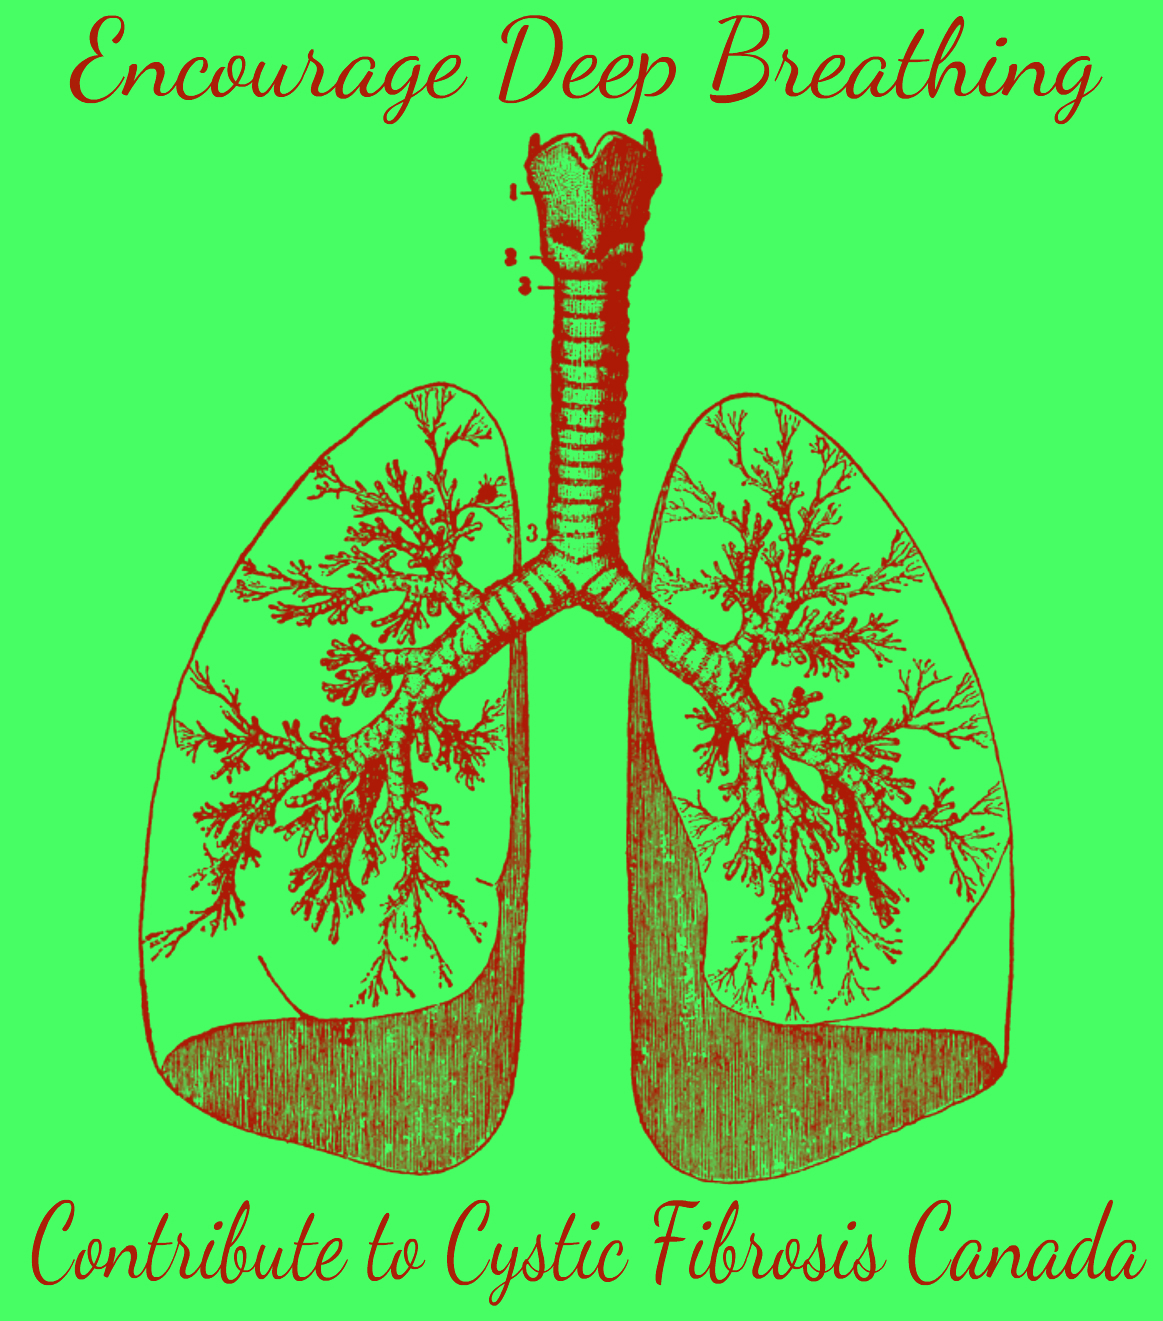 Encourage Deep breathing Contribute to CF